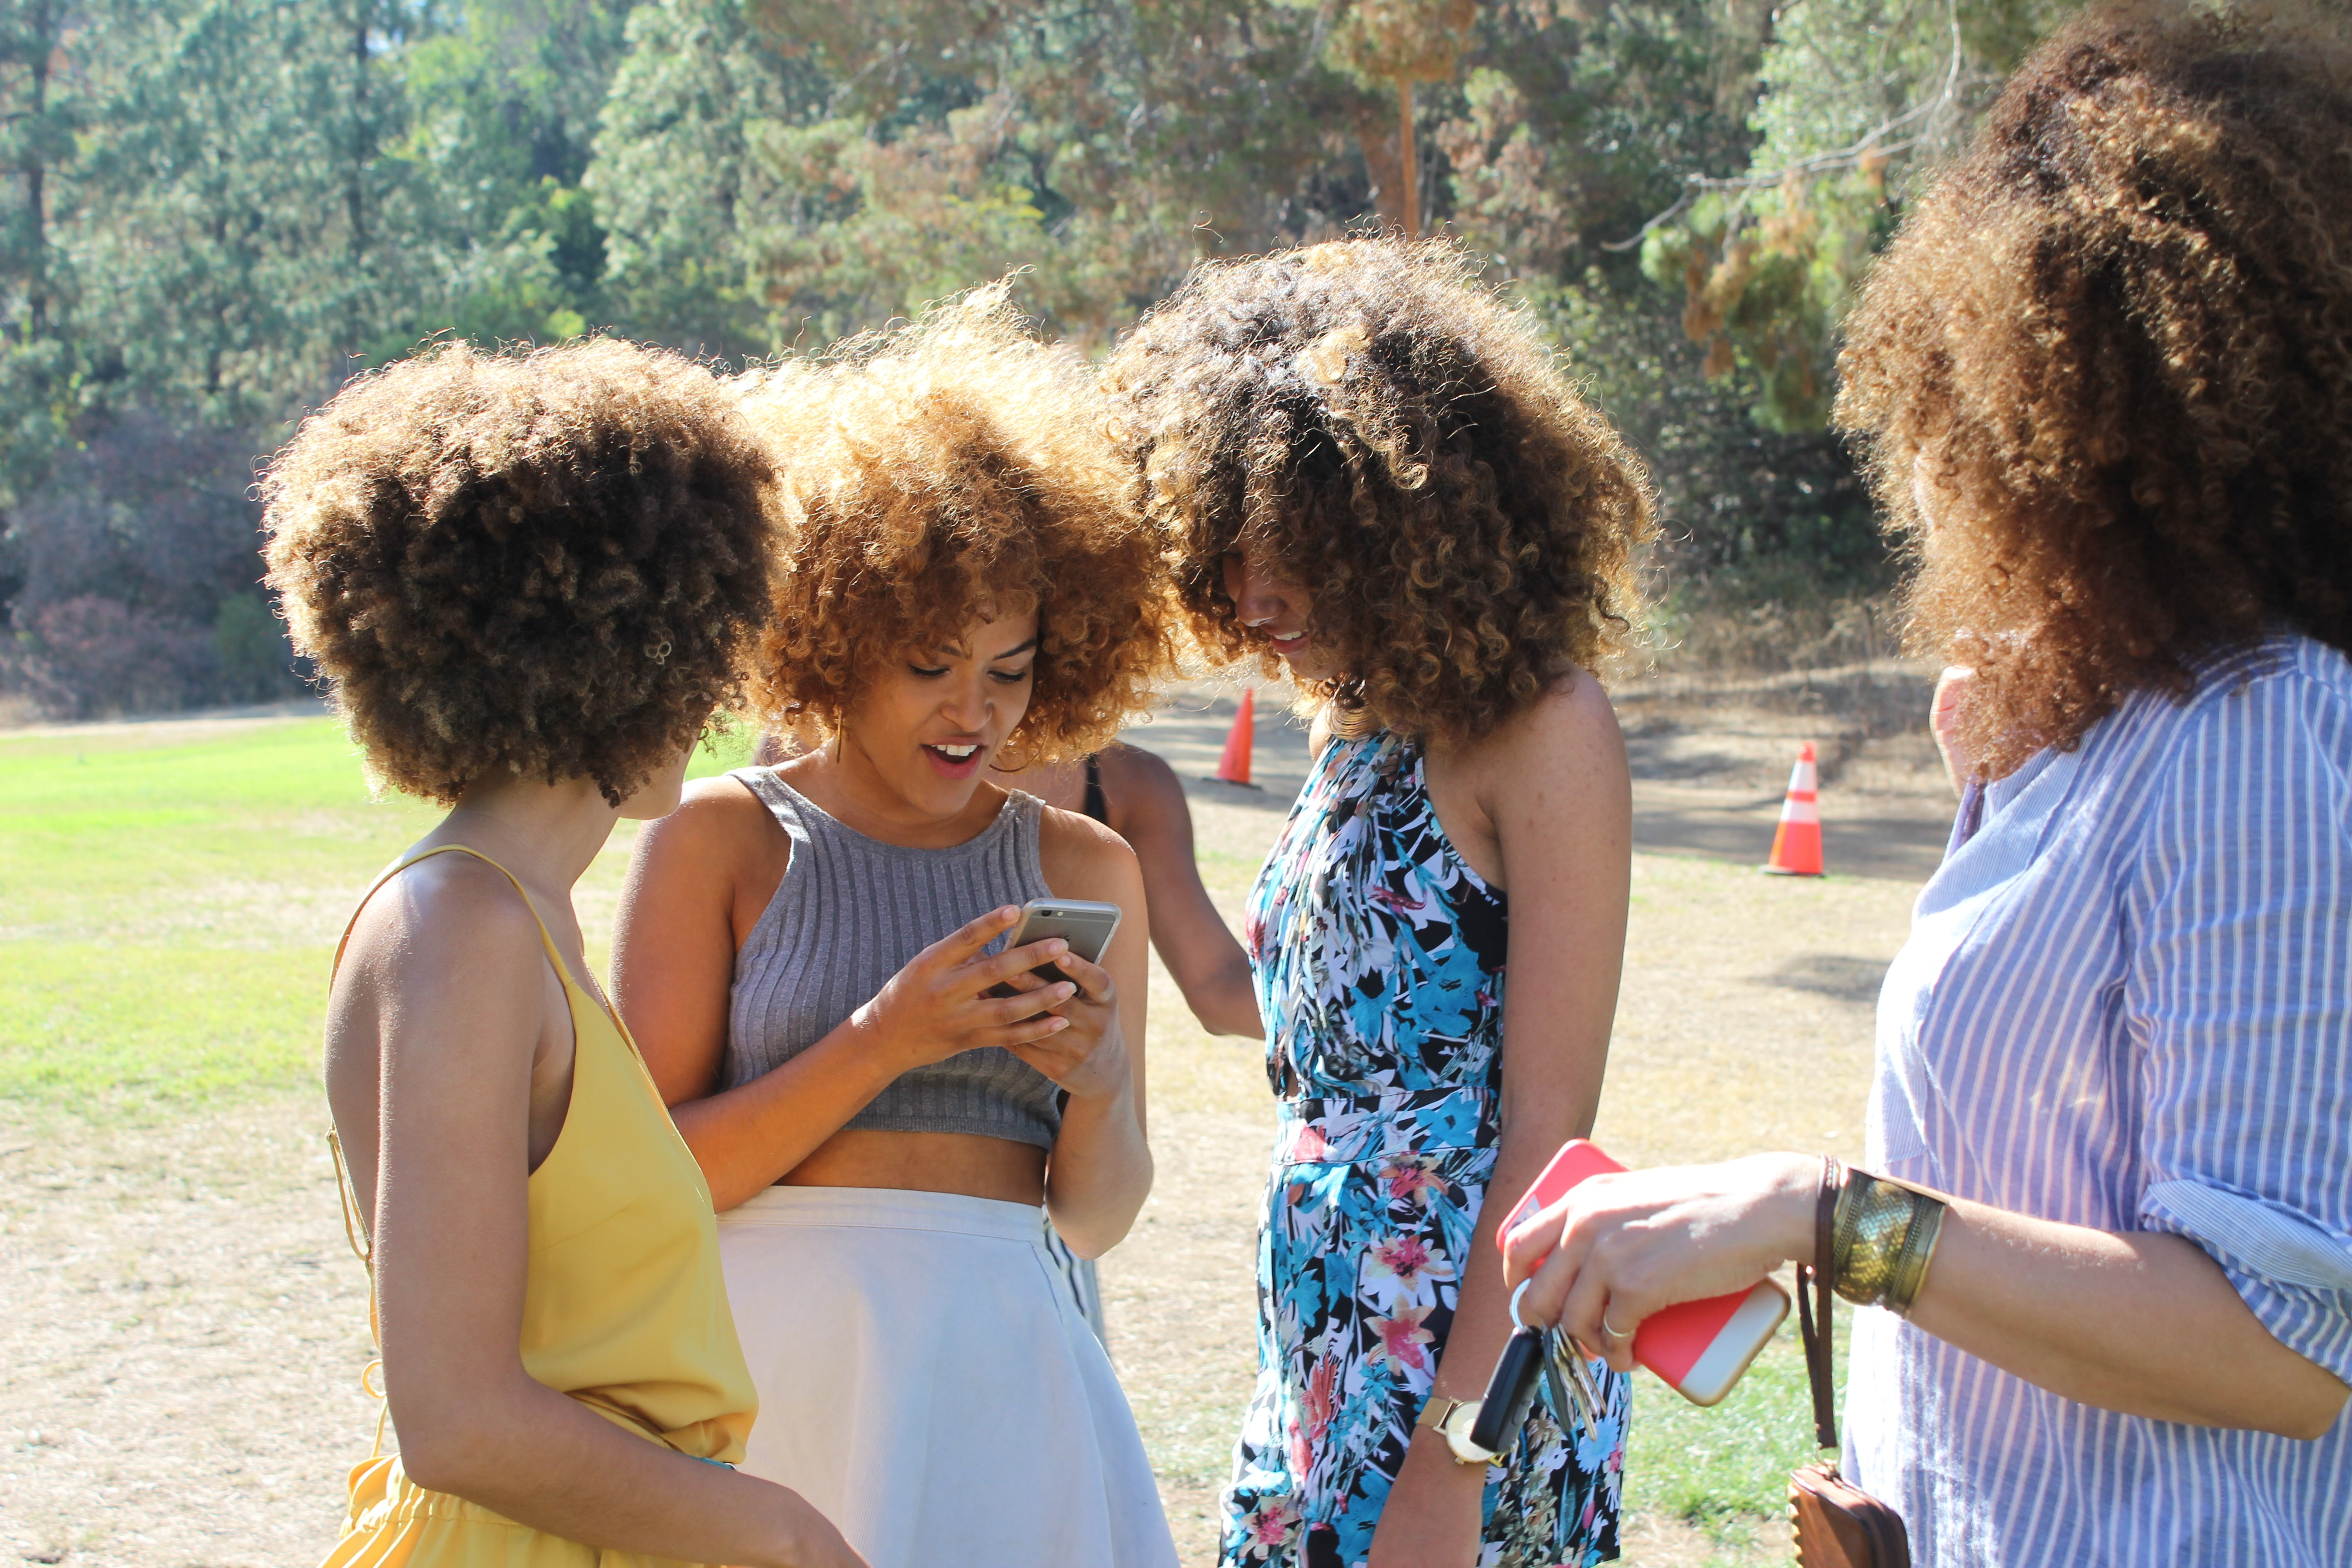 A photo featuring several women with curly hair standing together.